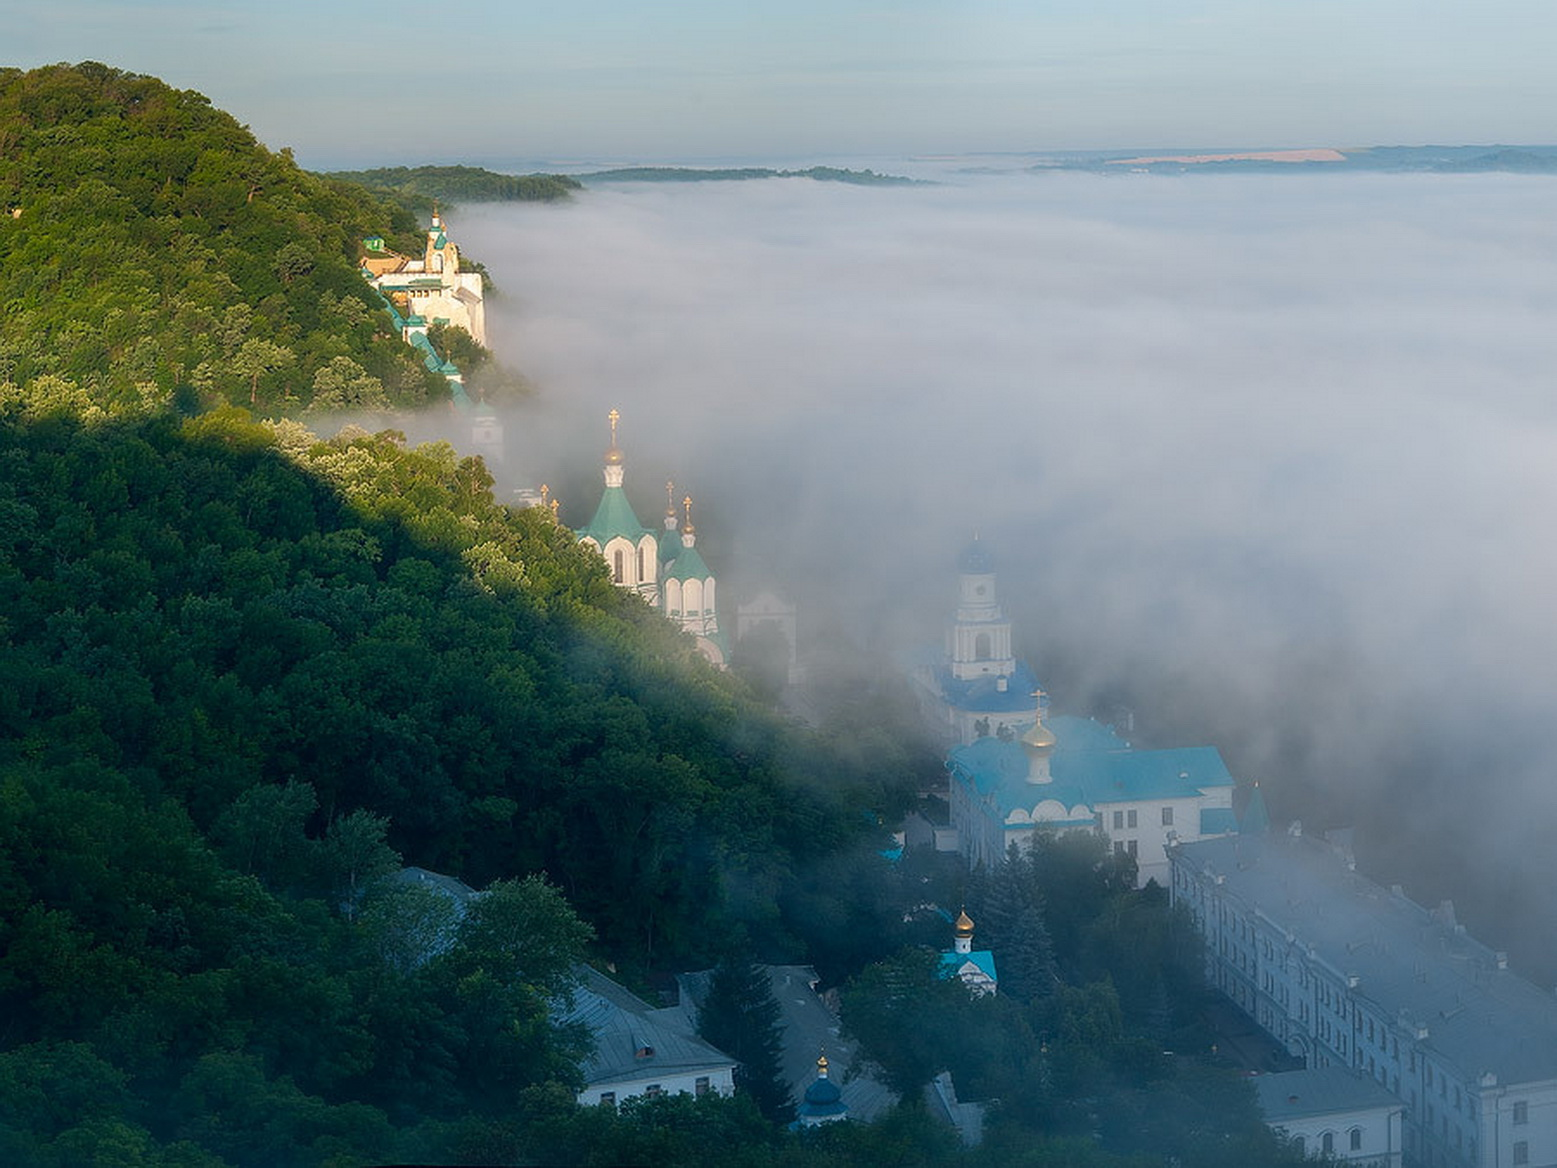 Svyatogorsk morning. Dmitry Balkhovitin